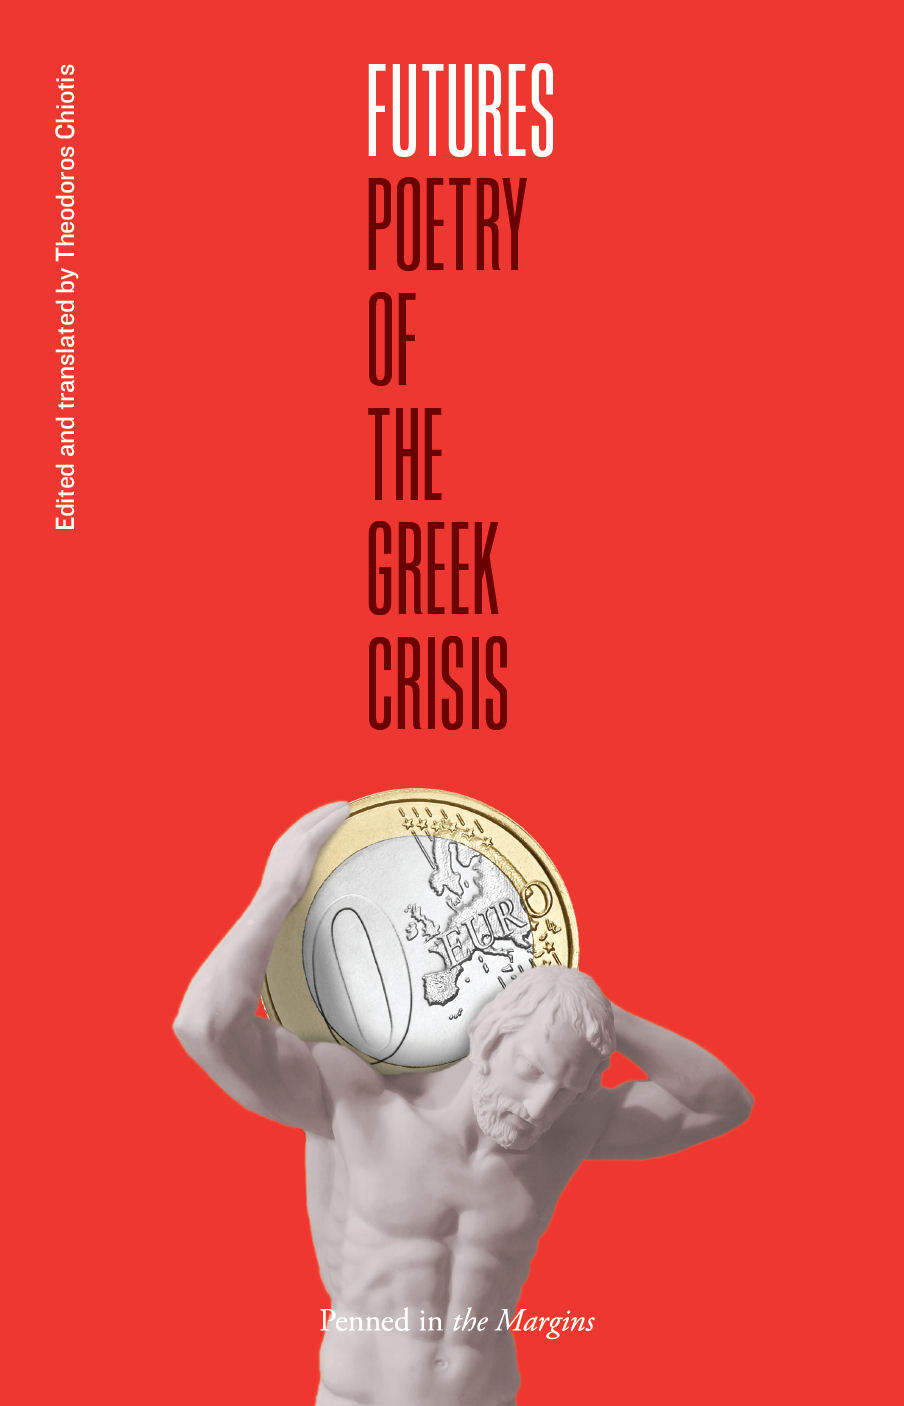 Futures: Poetry of the Greek Crisis